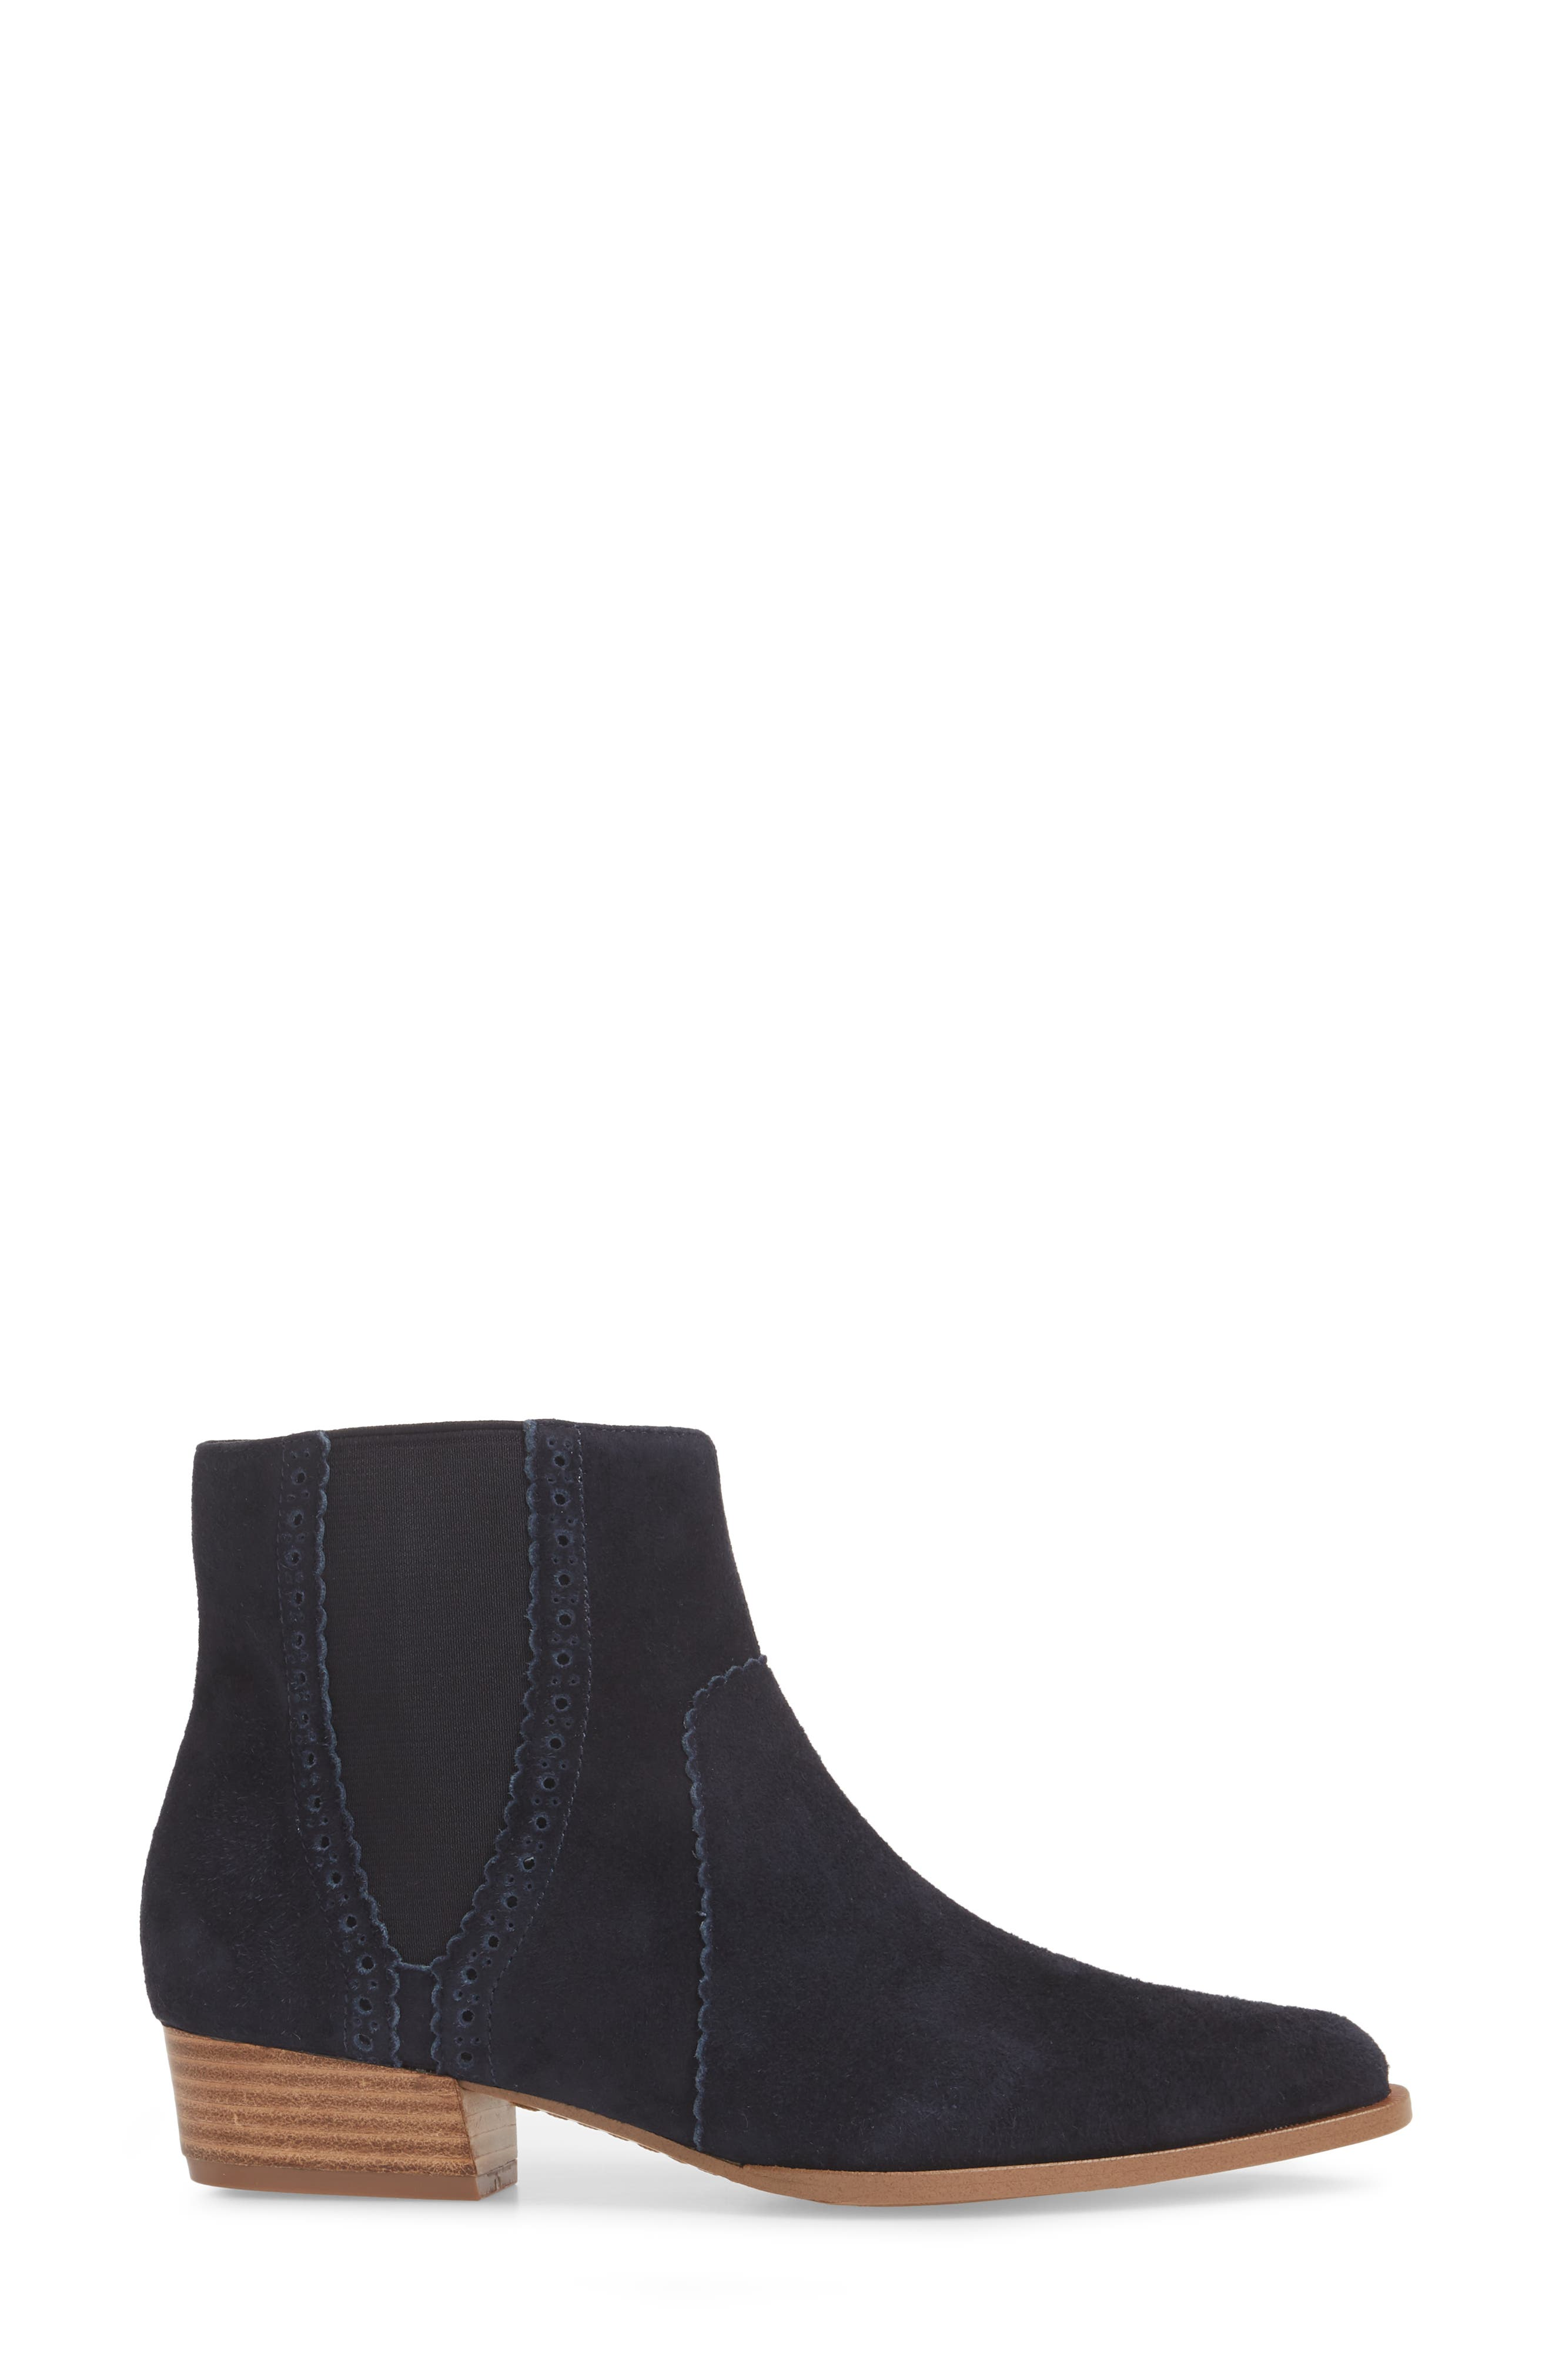 Mica Chelsea Bootie,                             Alternate thumbnail 3, color,                             SPACE CADET SUEDE